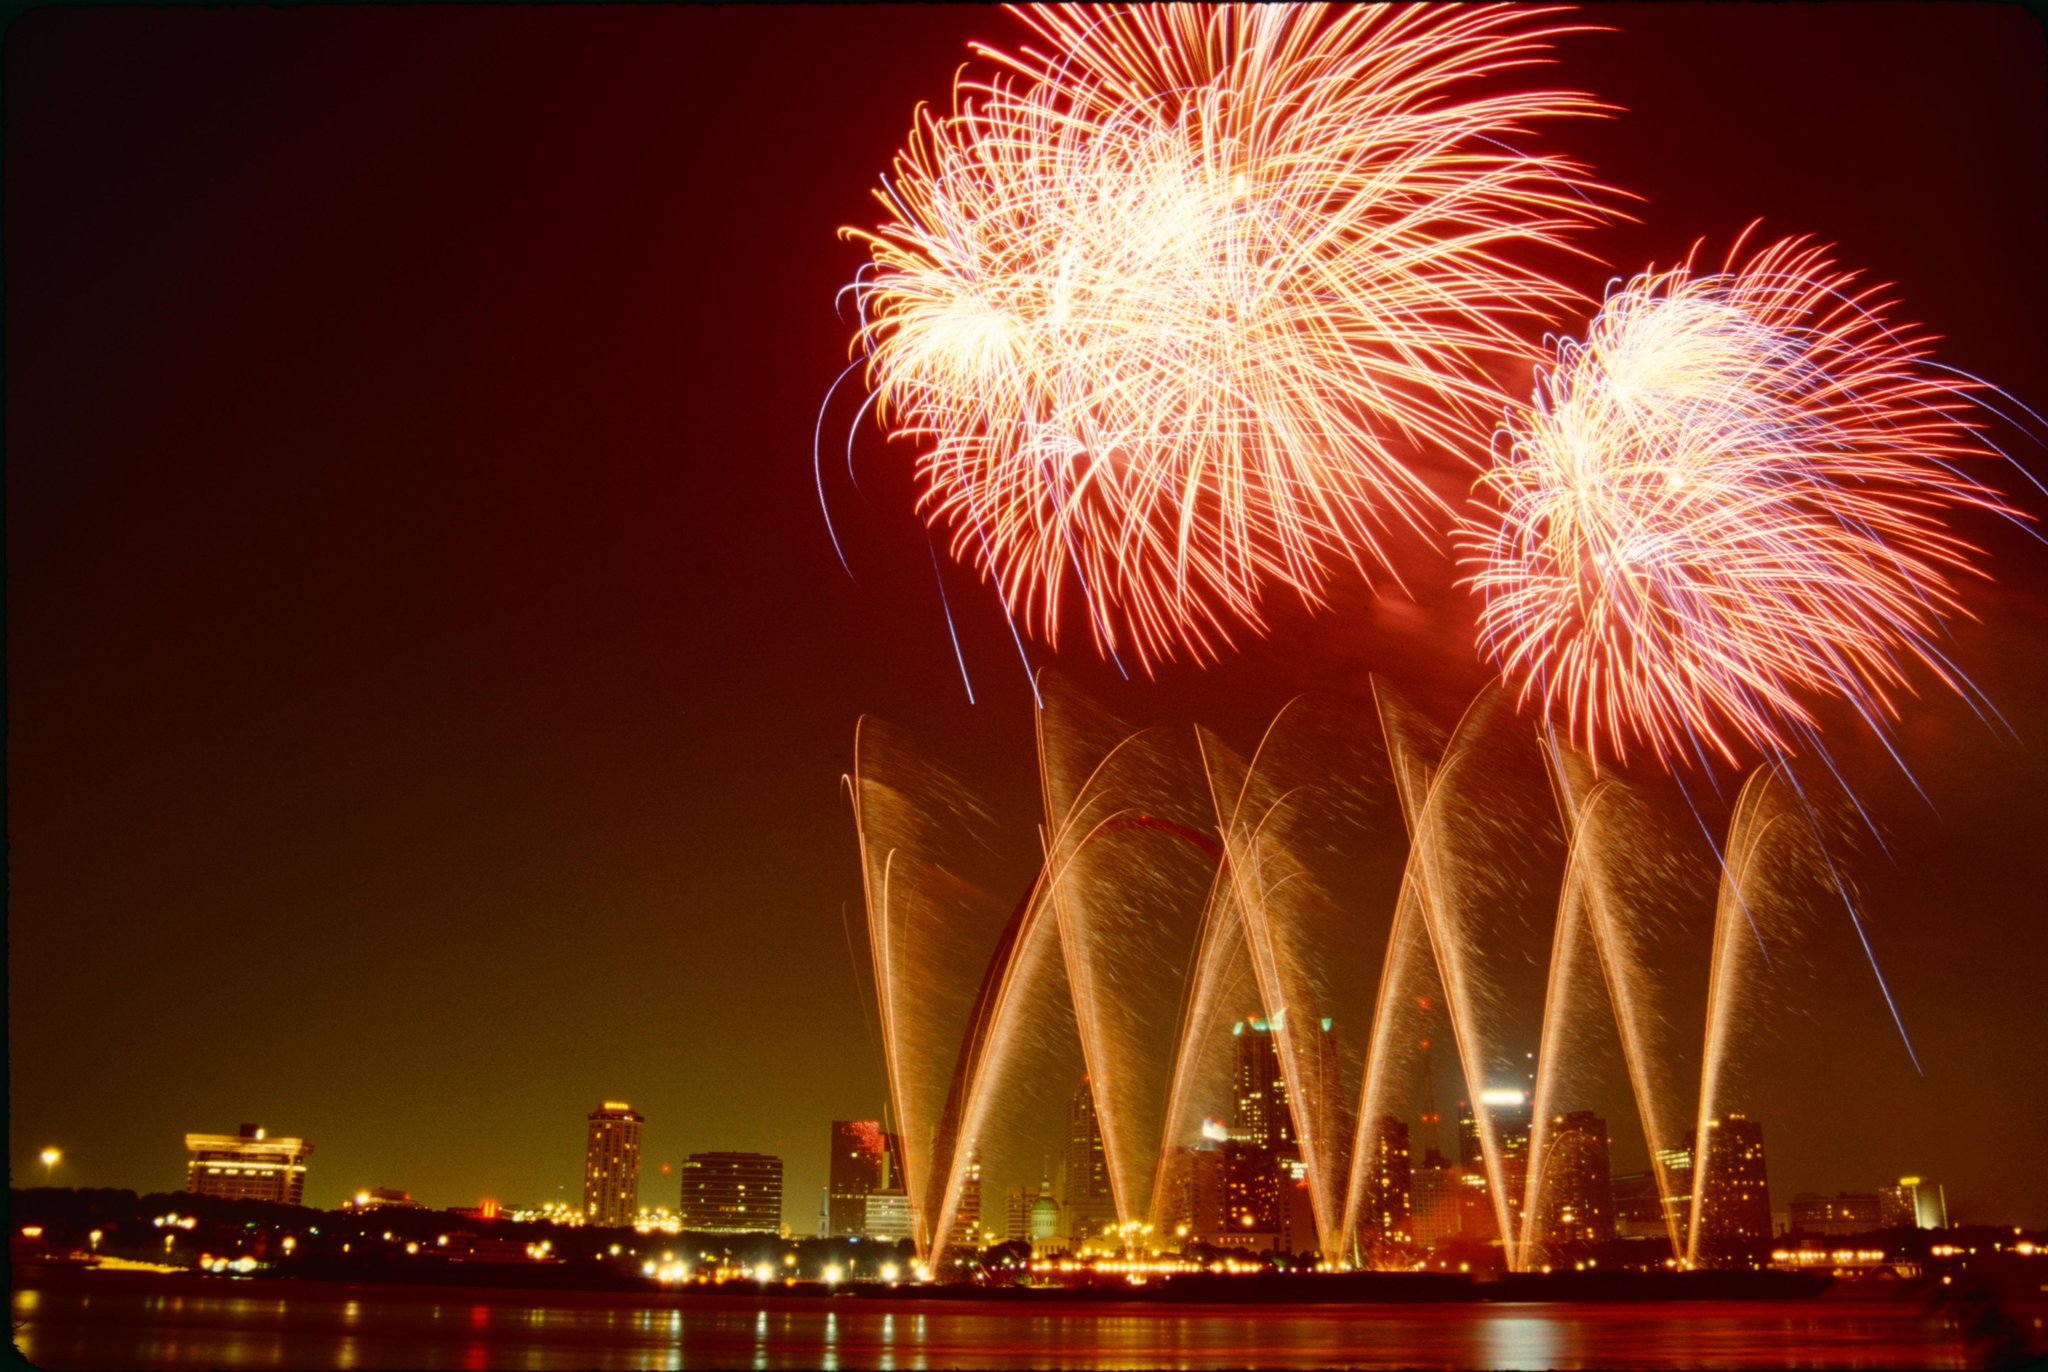 RT @TheNextWeb: Take awesome fireworks photos today with these 13 low light shooting tips http://t.co/179BdASEyF http://t.co/z6wtOxFaIk